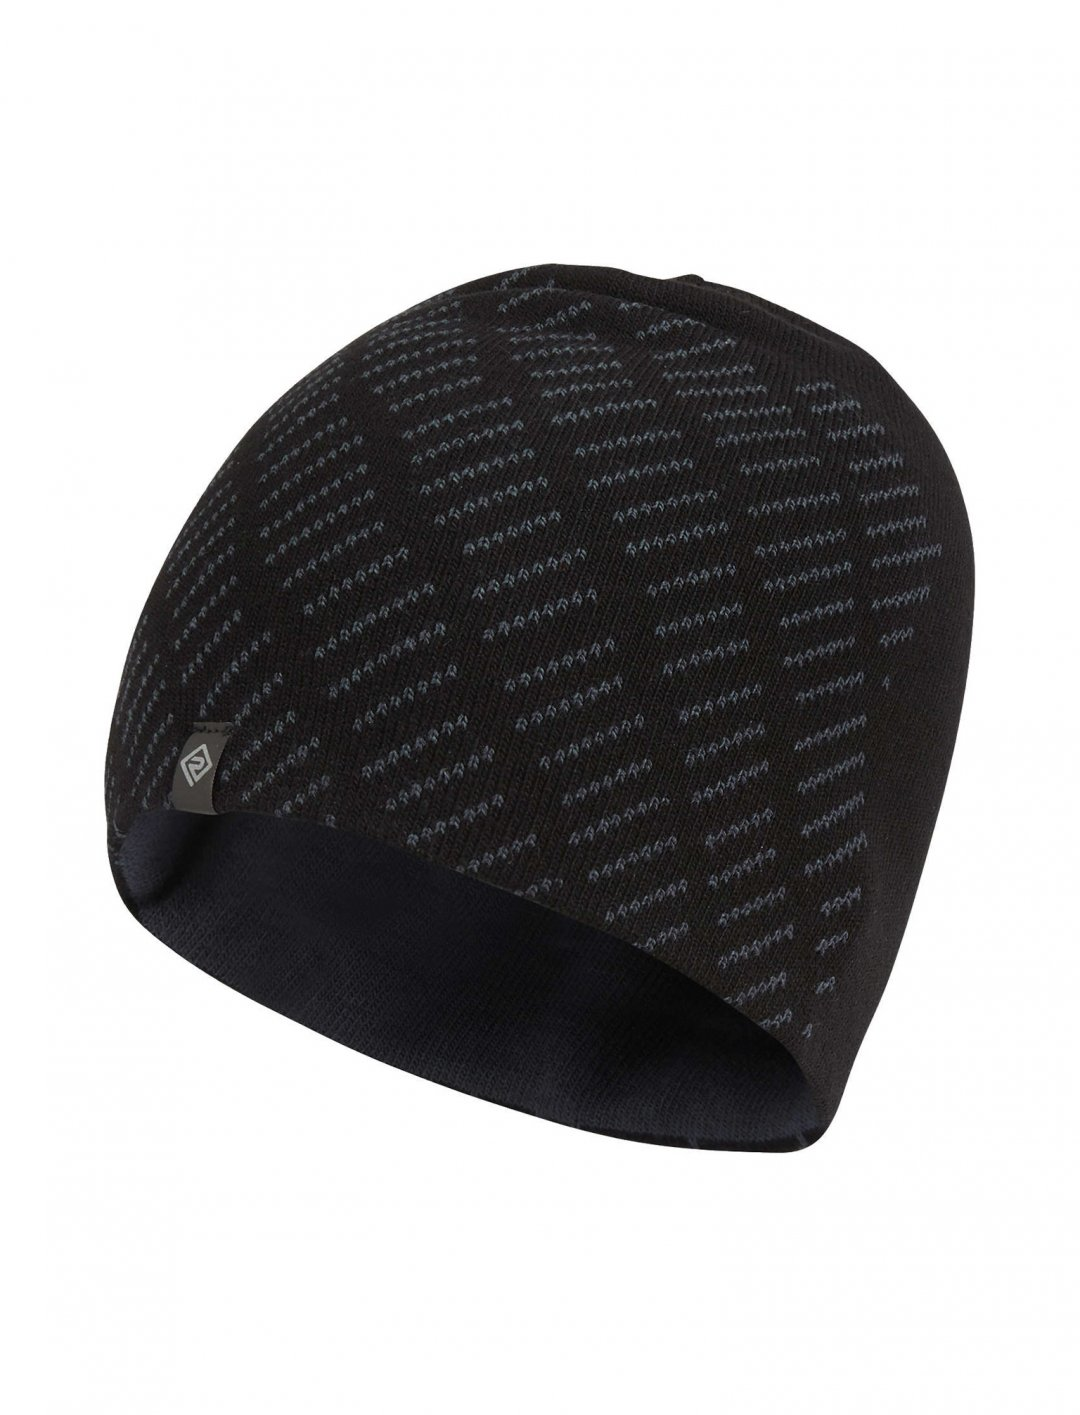 "The Ronhill Beanie Hat {""id"":16,""product_section_id"":1,""name"":""Accessories"",""order"":15} The Ronhill"